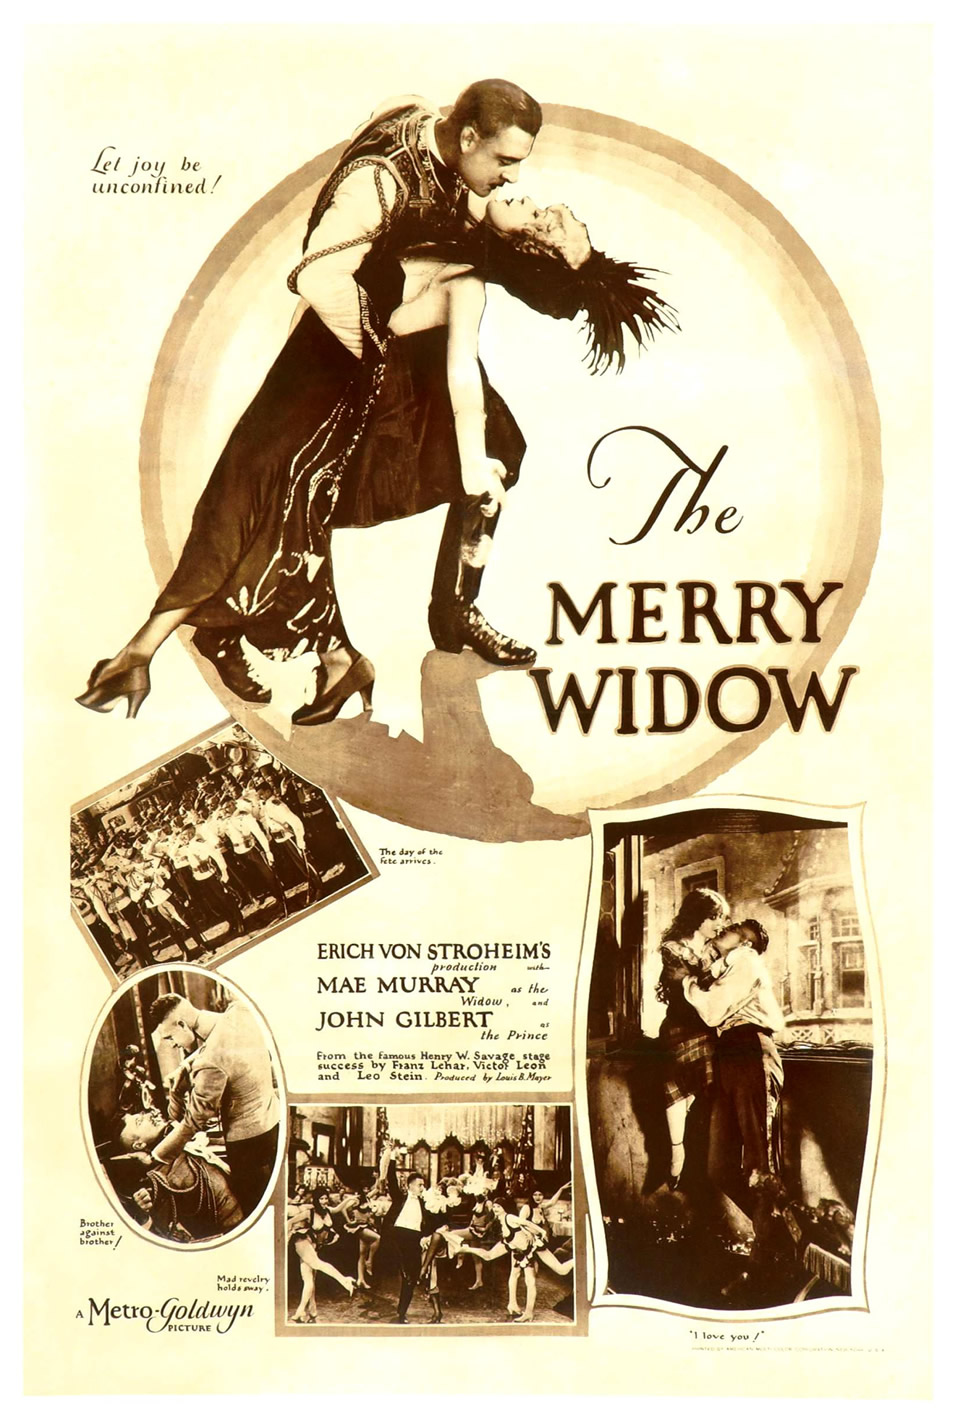 The Merry Widow (1925)